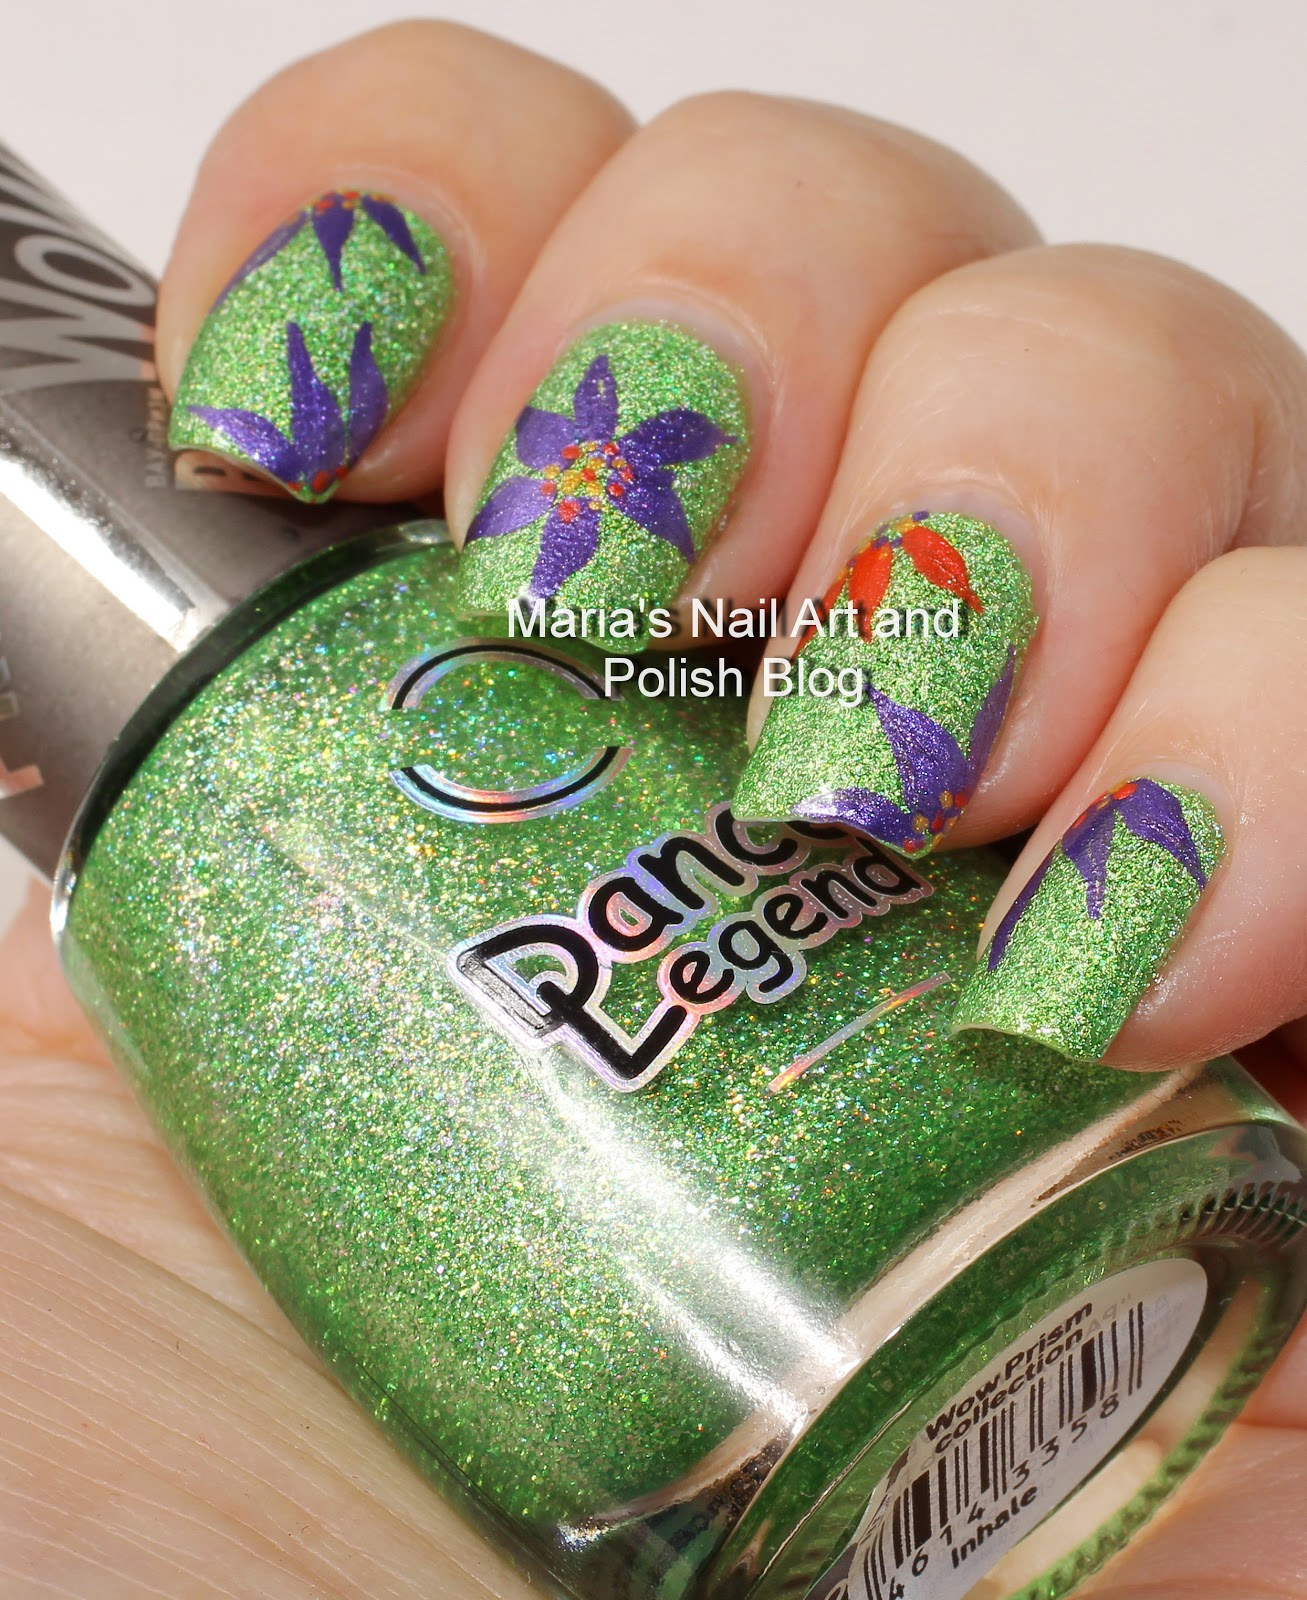 Marias Nail Art and Polish Blog